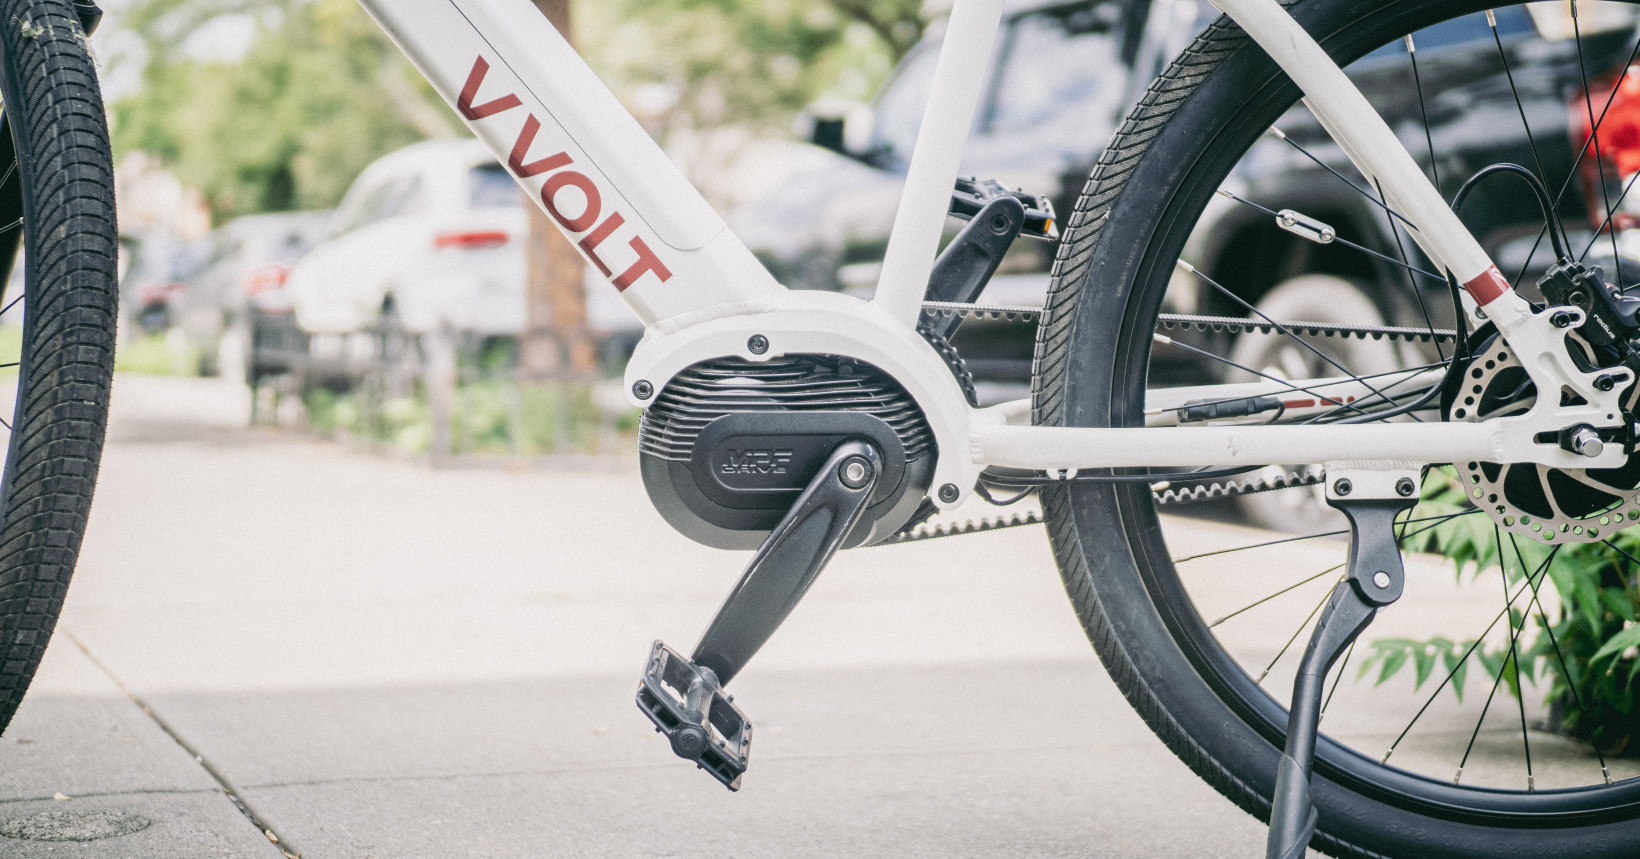 Read more about the article This low-maintenance ebike is like riding on a cloud